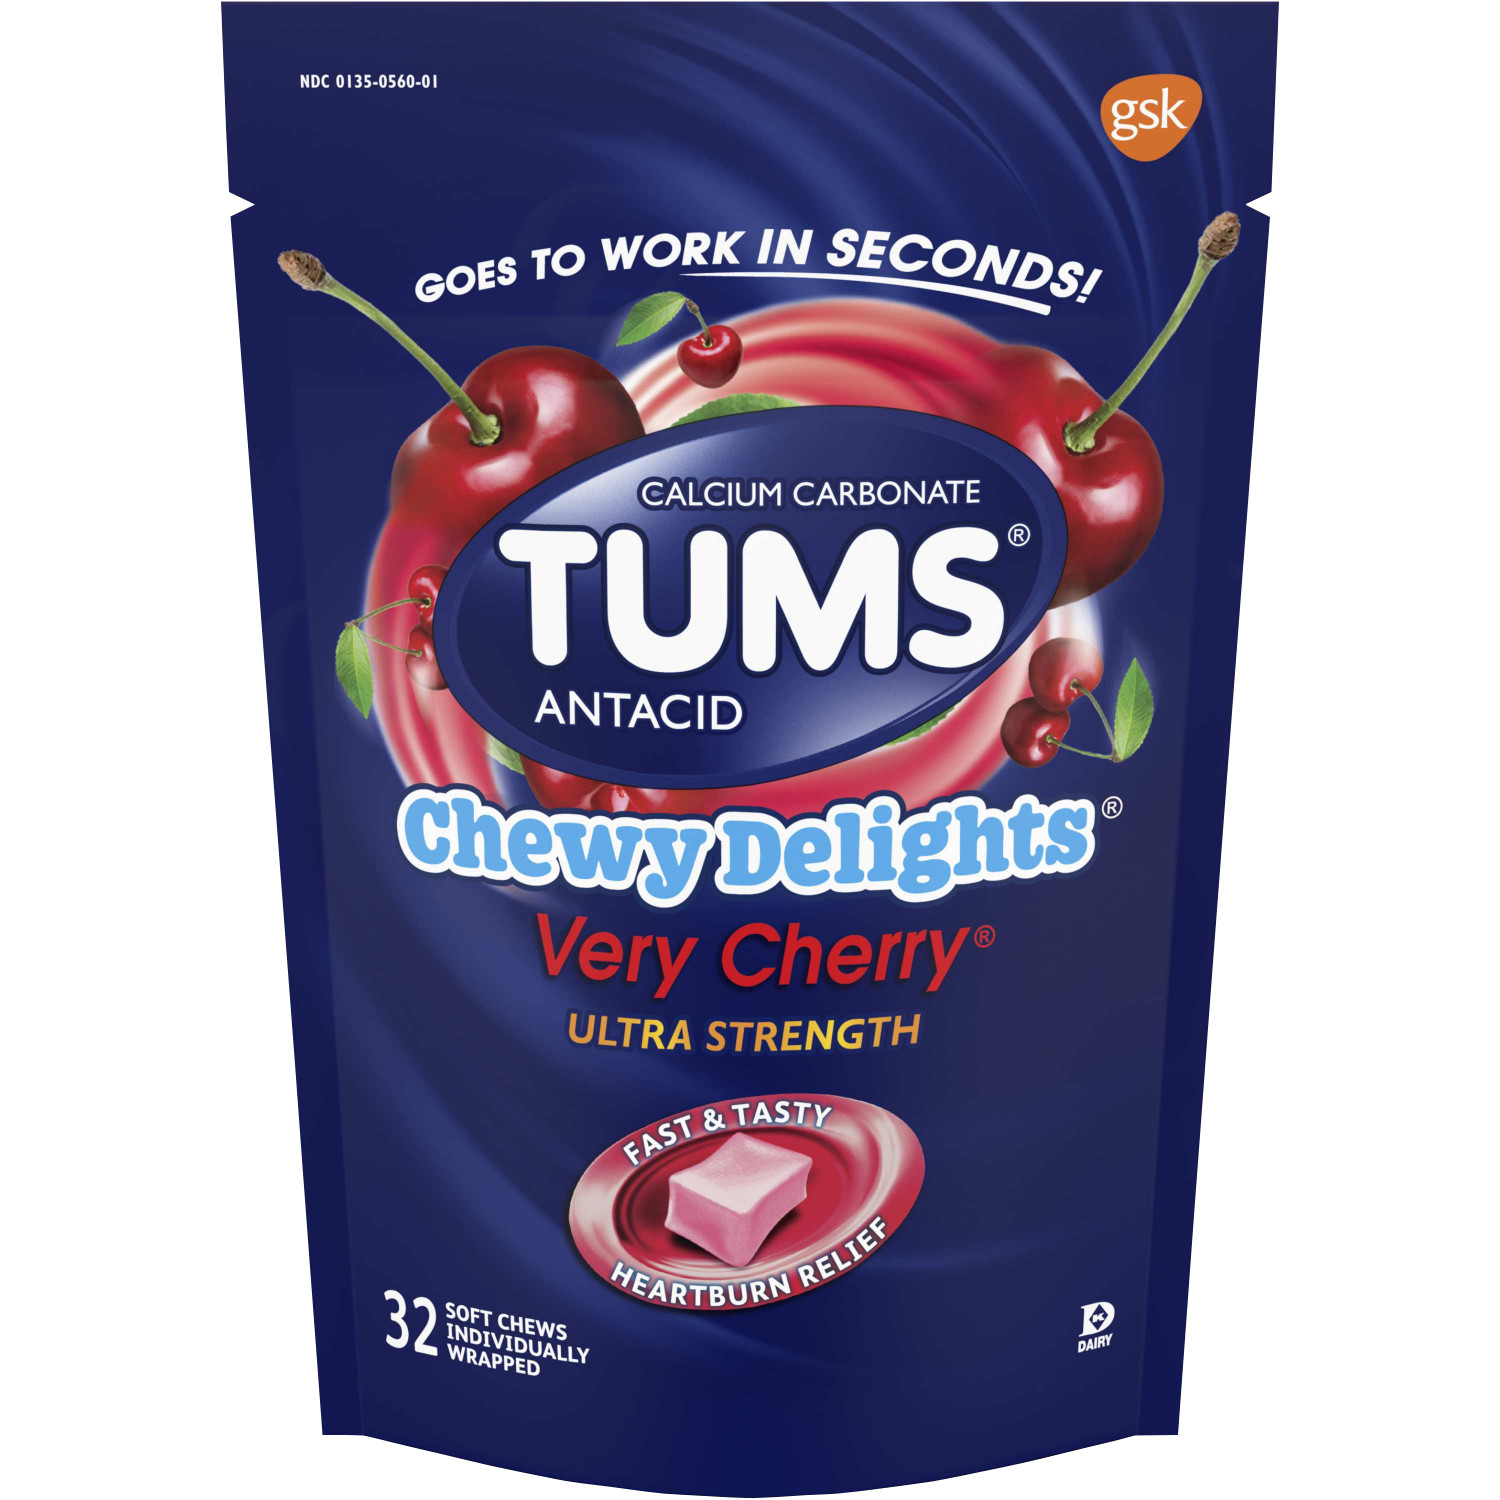 TUMS Antacid, Chewy Delights Very Cherry Ultra Strength Soft Chews for Heartburn Relief, 32 Antacid Chews